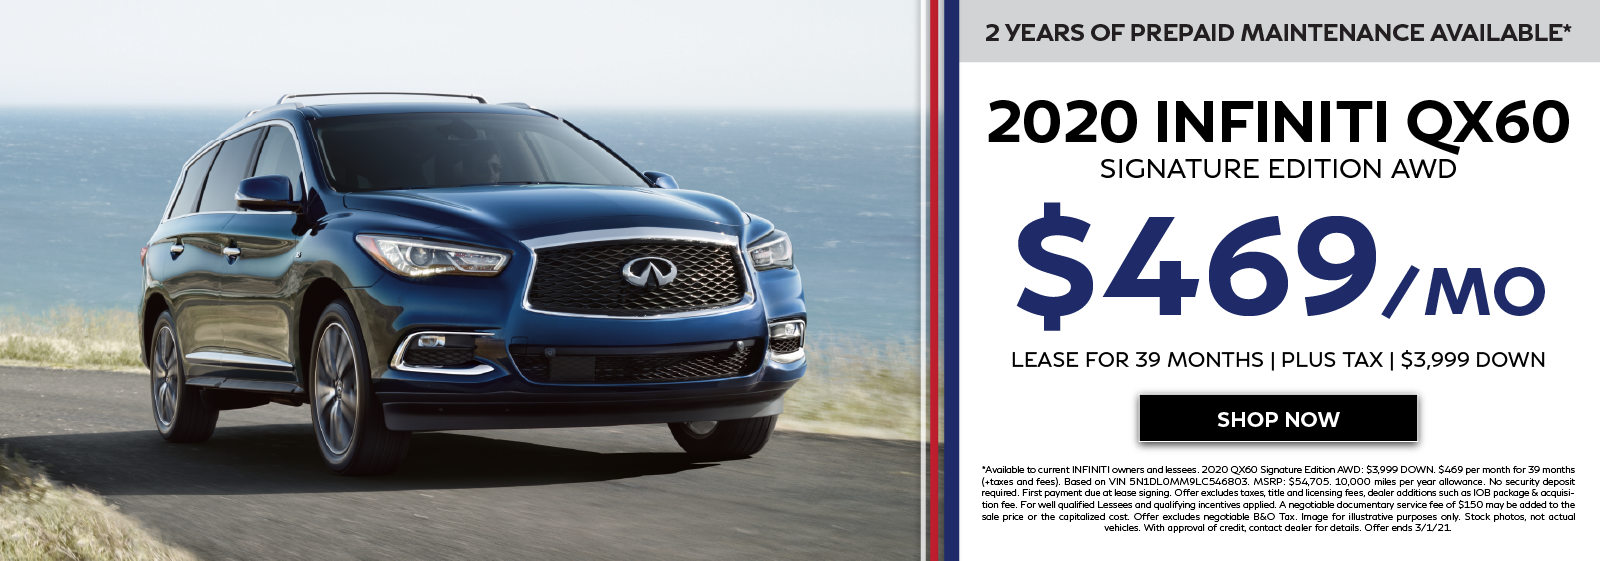 2020 INFINITI QX60 Offers. Click to shop now.